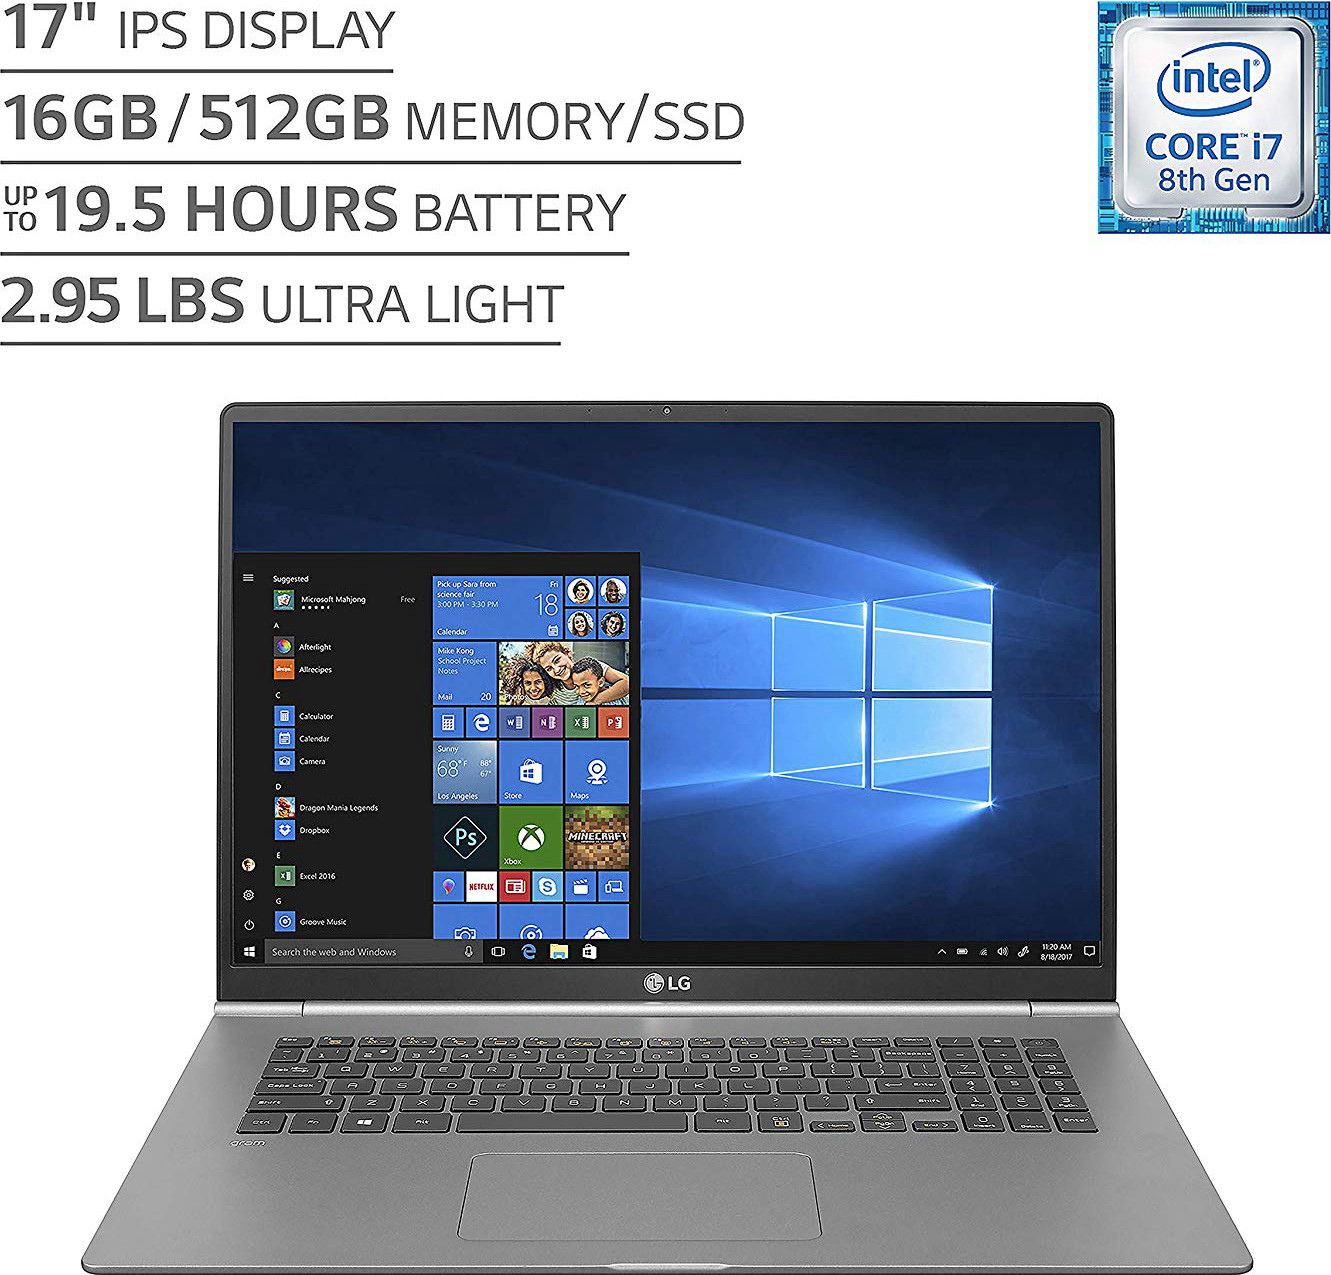 "LG gram Thin and Light Laptop - 17"" (2560 x 1600) IPS Display, Intel 8th Gen Core i7, 16GB RAM, 512GB SSD, up to 19.5 Hour Battery, Thunderbolt 3 - 17Z990-R.AAS8U1 (2019), Dark Silver"